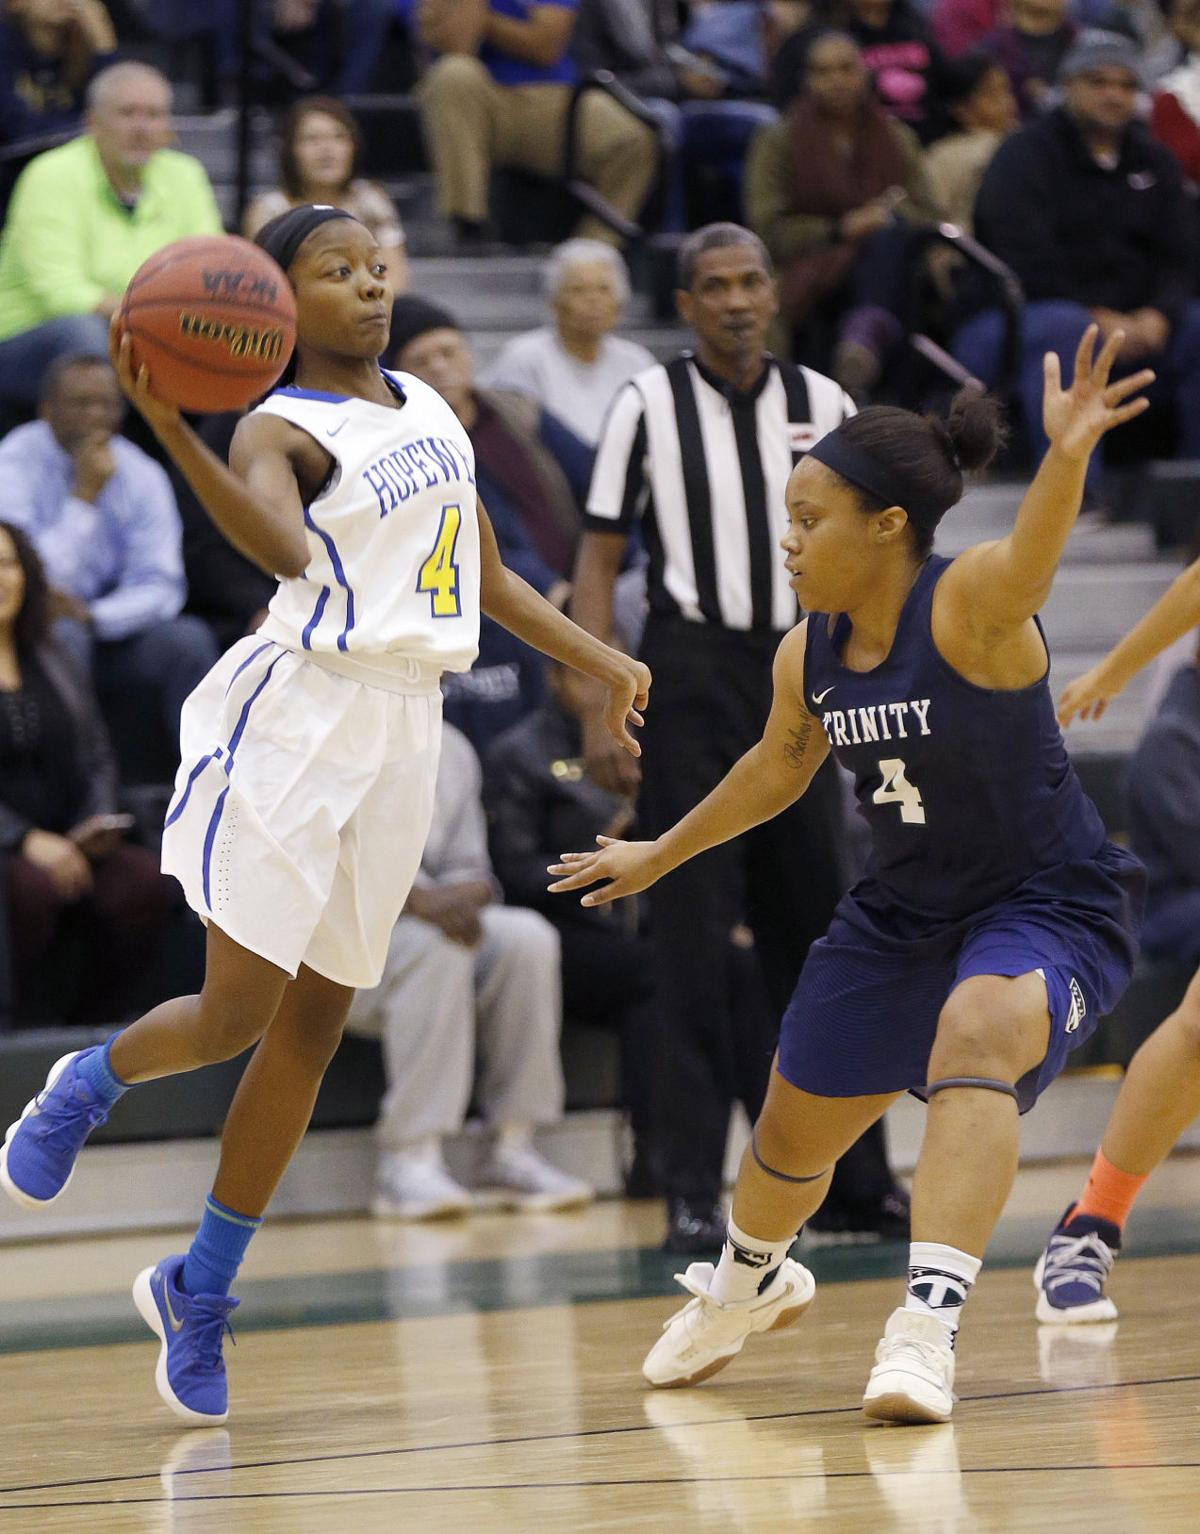 TDIT girls semifinal game: Hopewell vs. Trinity Episcopal